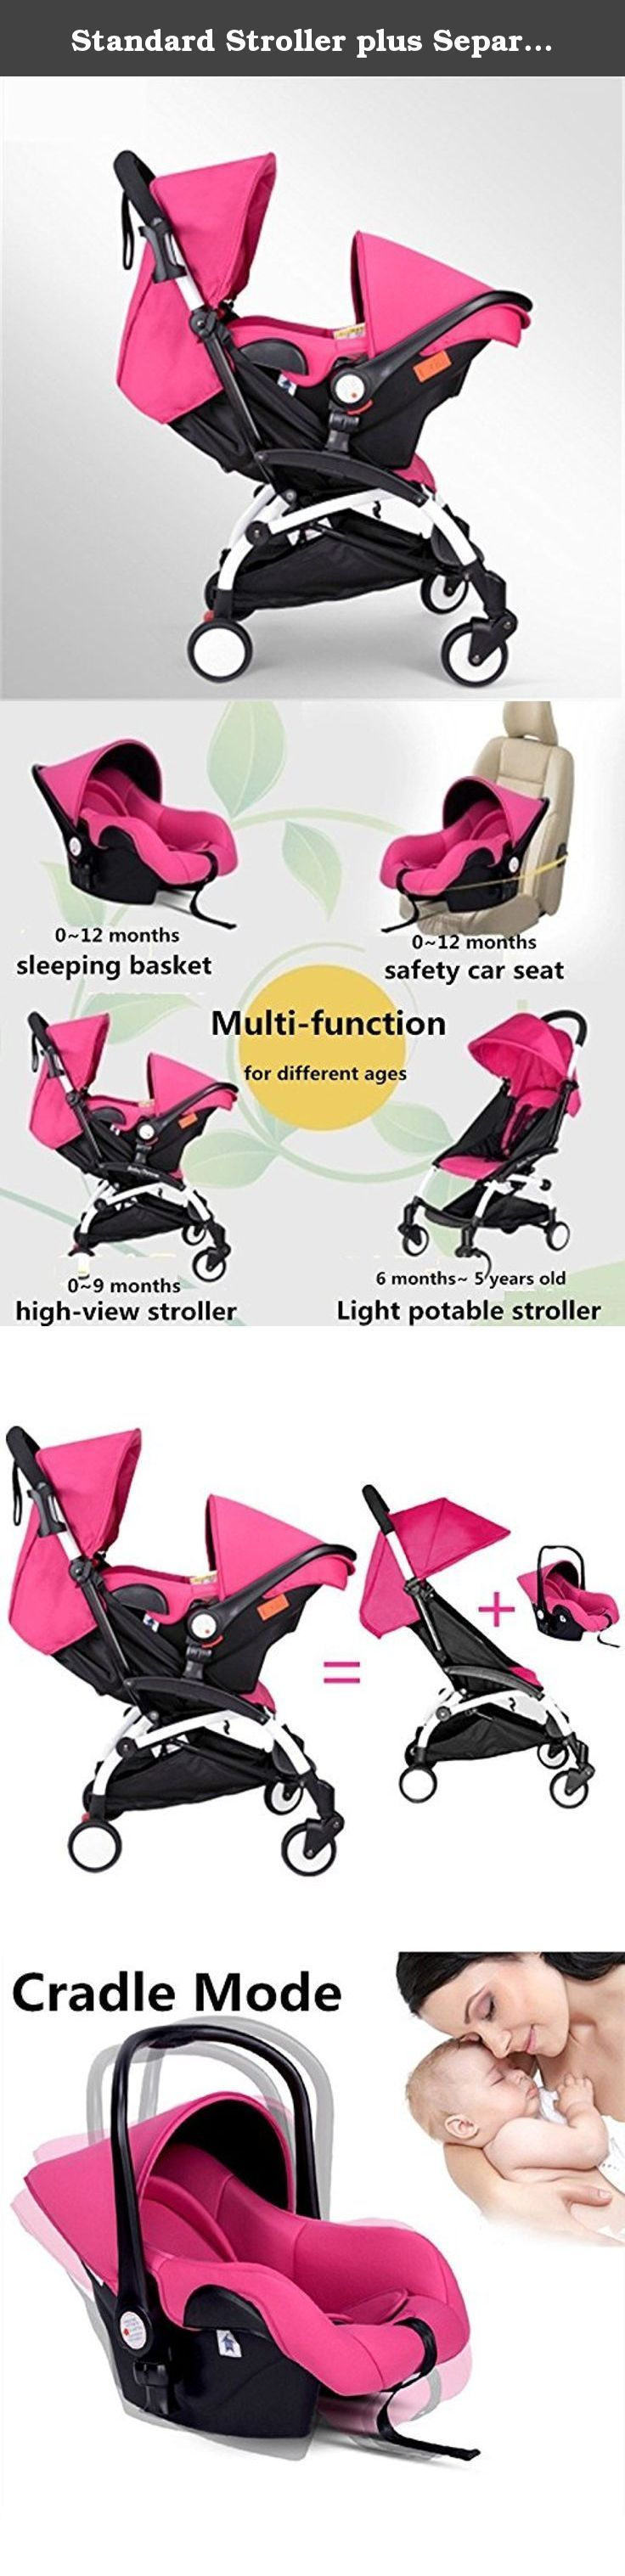 Standard Stroller plus Separate Car Seat, 5.8kg Light, Multi-function, Suspension, Portable, Bidirectional, Folding and Detachable Stroller for Baby to Sit or Lie down (pink). Some Specials of Our Commodity 1:Our strollers are with higher ground clearance than others, which can protect you baby from the air pollution and can have a broad view. 2:Our product with the the suspension function can protect the baby from shake which is harmful for the brain. 3:Wide age group from 0~6 years old…